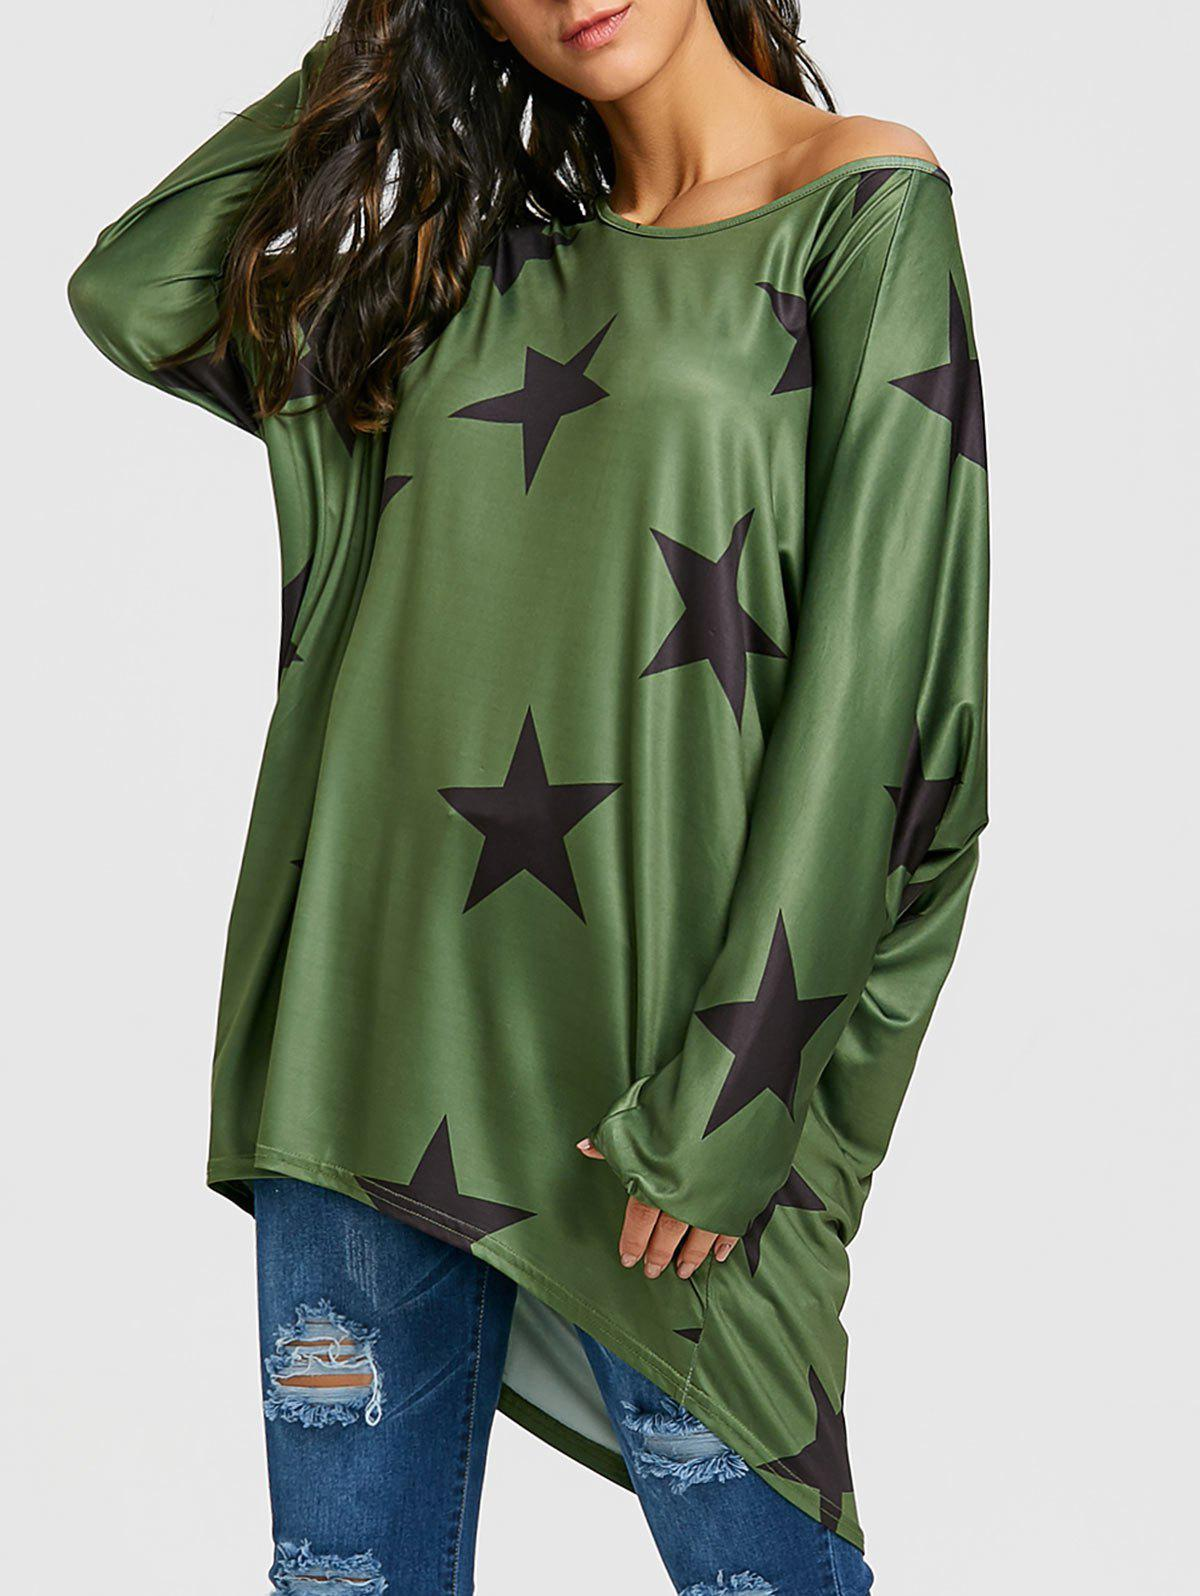 Affordable High Low Star Print Oversized Tunic T-shirt